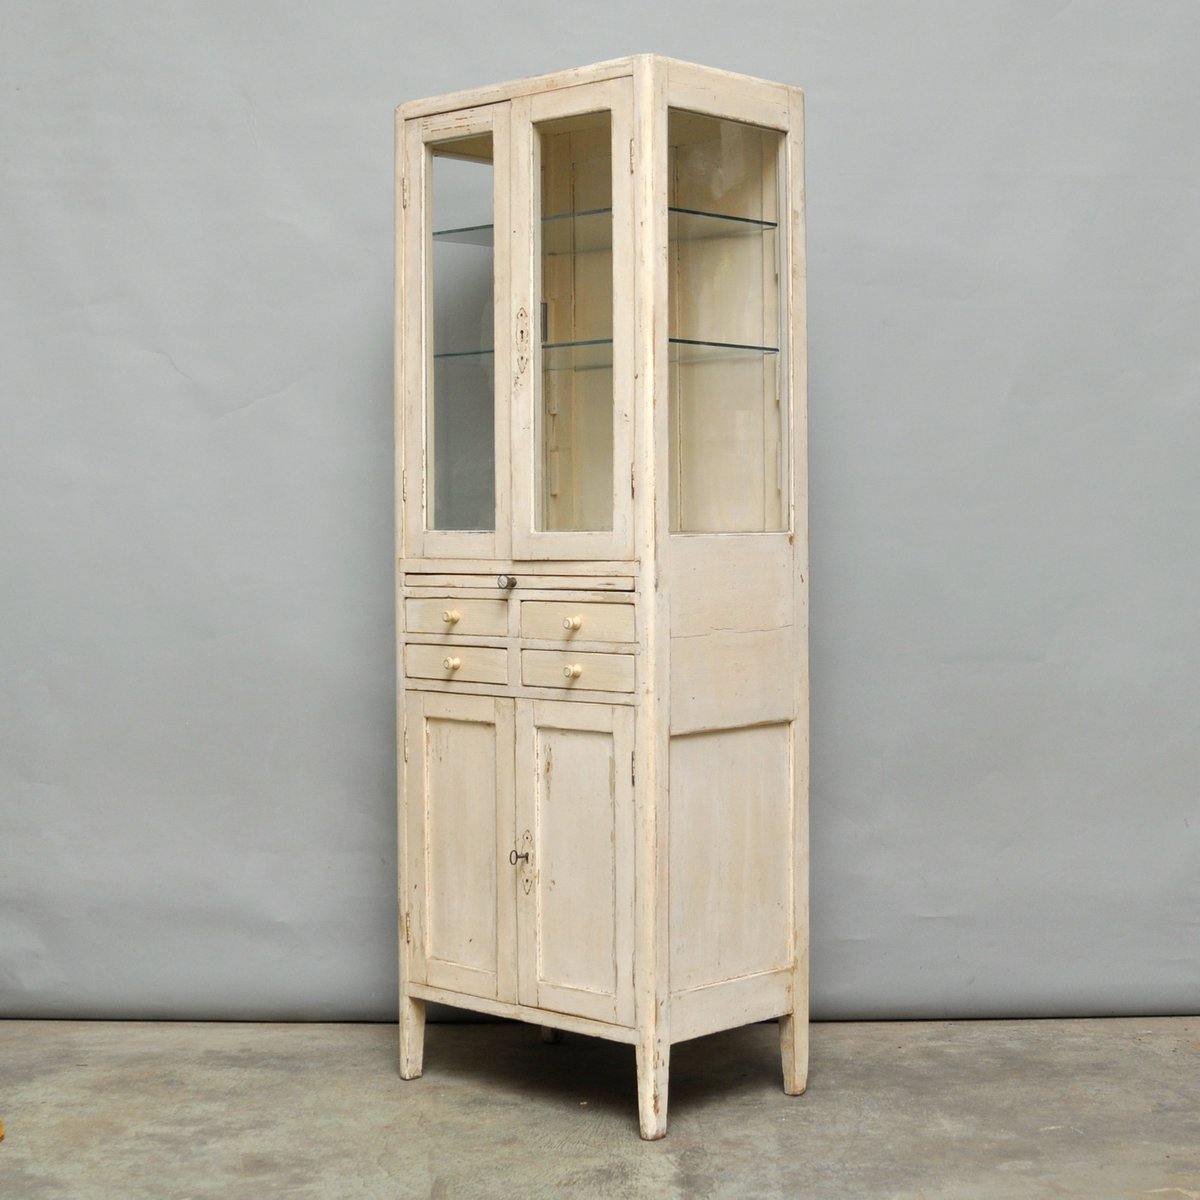 Hungarian wooden medical cabinet 1940s en vente sur pamono - Cabinet medical republique ...